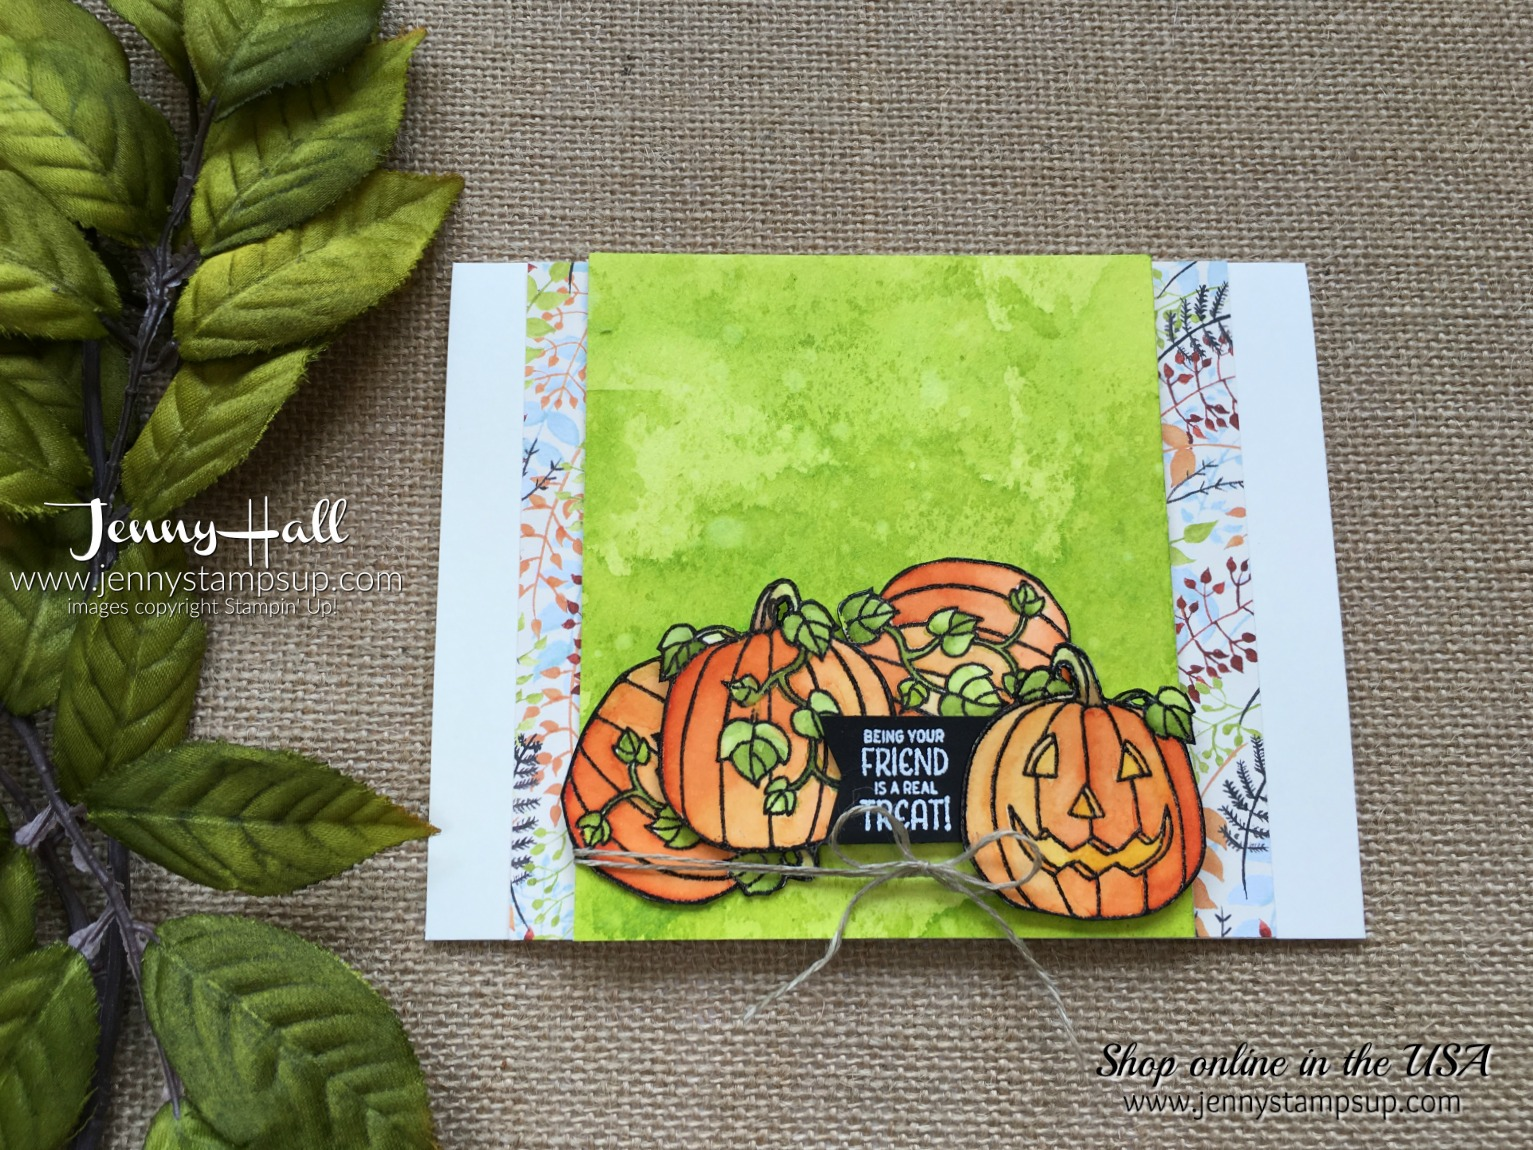 Seasonal Chums Bundle pumpkin card by Jenny Hall at www.jennyhalldesign.com for cardmaking, scrapbooking, papercraft gift giving, video tutorials and more